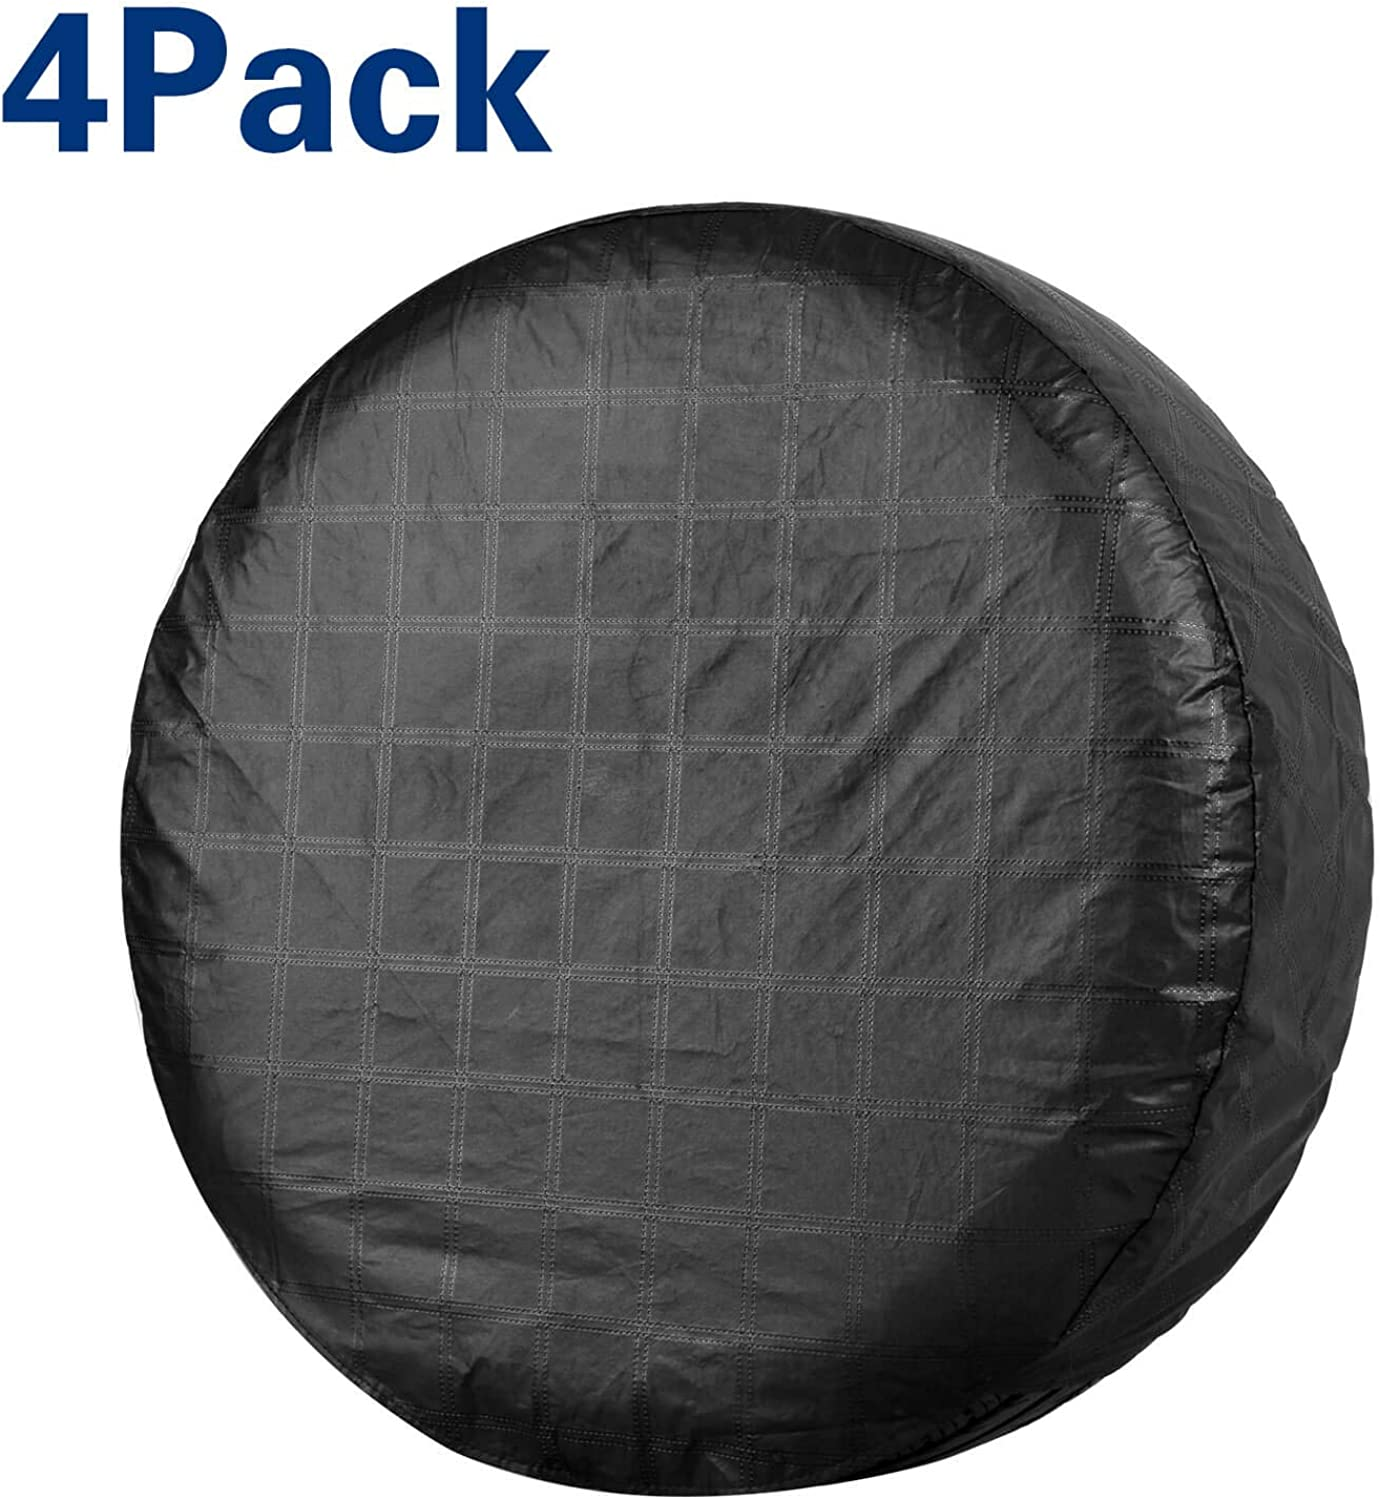 Filican Making Memories One Campsite at A Time Spare Tire Cover Universal Waterproof Wheel Covers for Trailer RV Car Truck